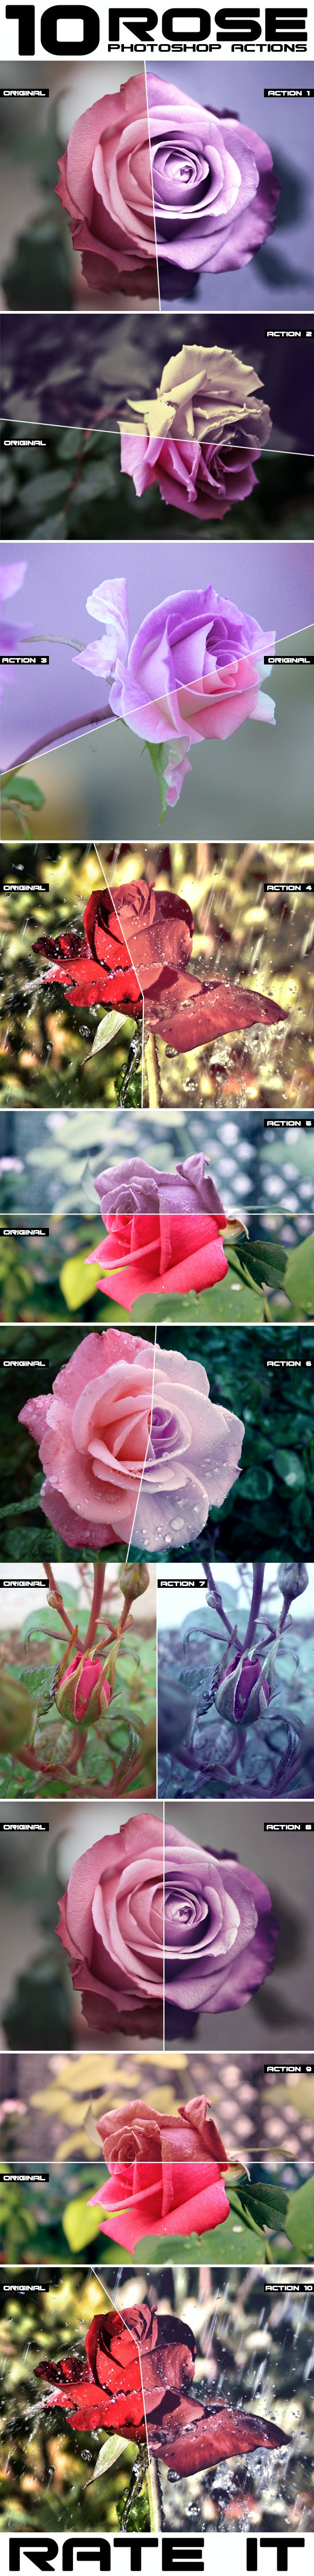 Rose Flowers Actions - Photo Effects Actions